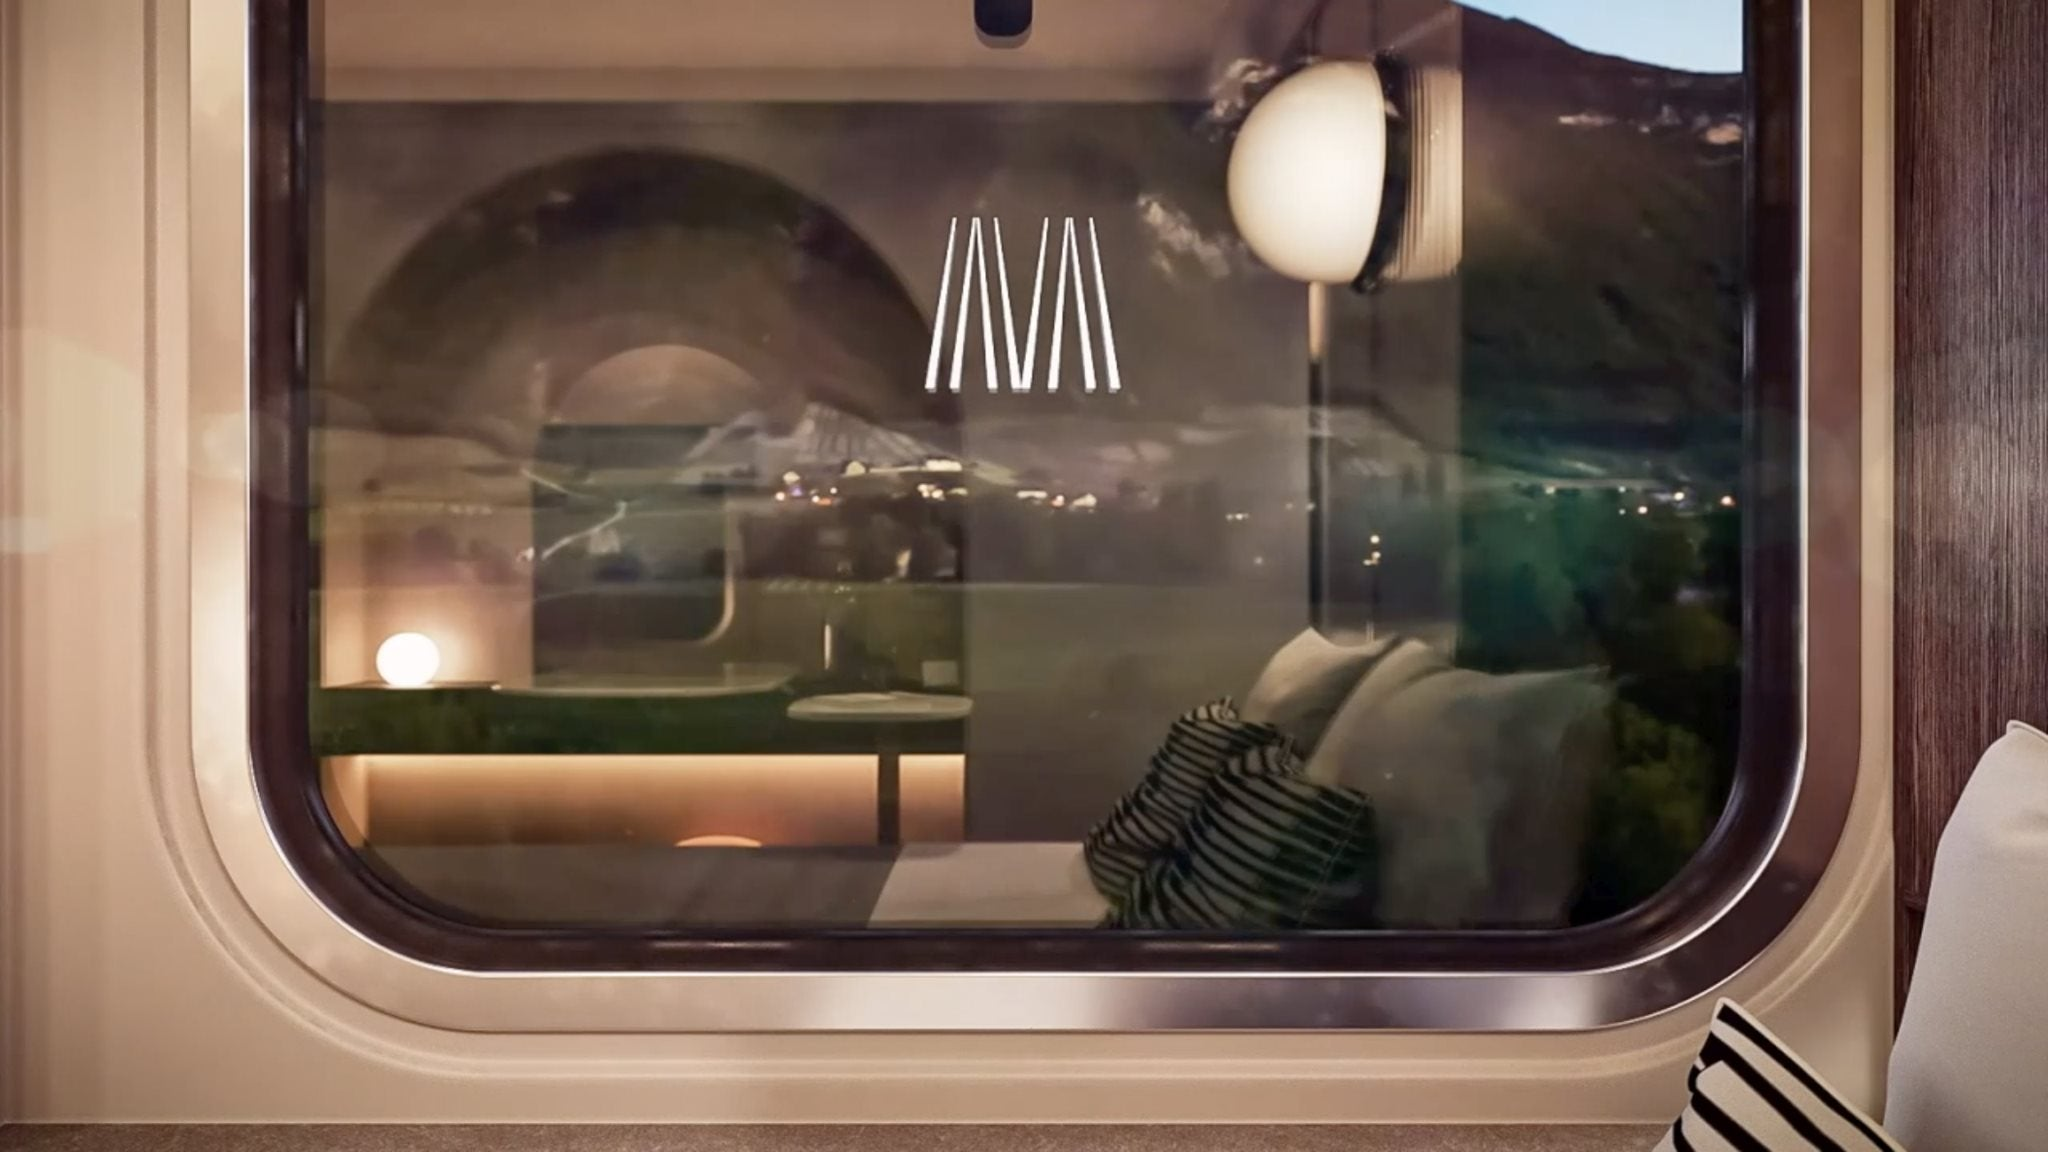 European startup aims to make overnight train travel a luxury experience - The Points Guy